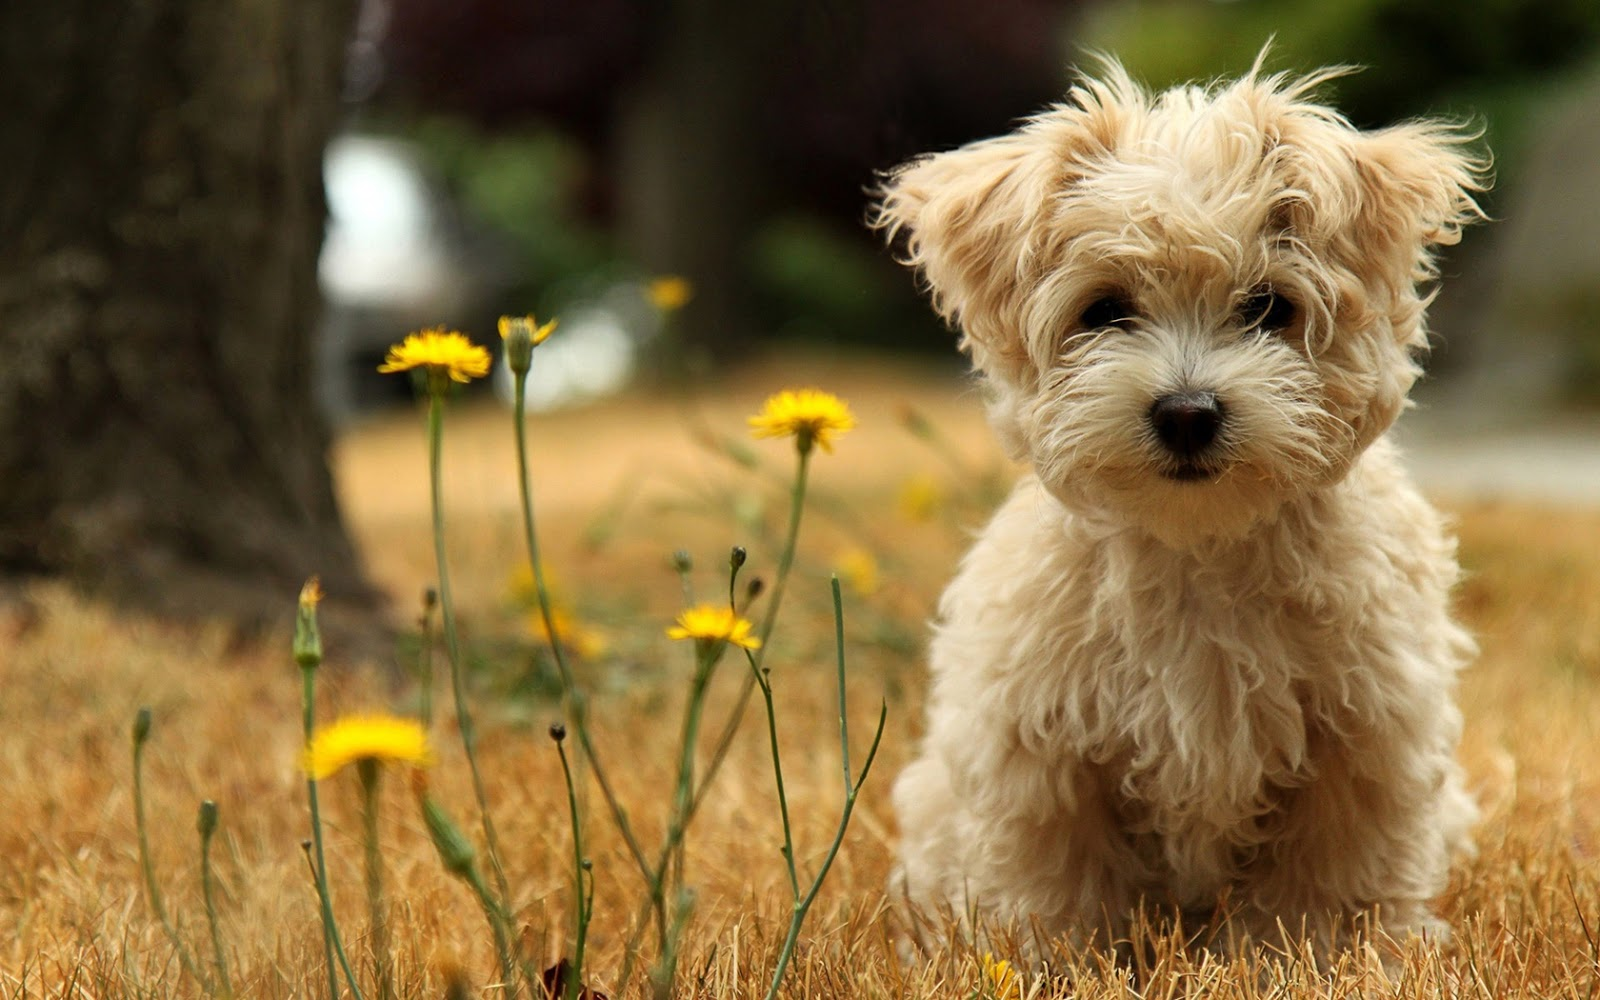 cute puppies hd wallpapers � wallpaper202